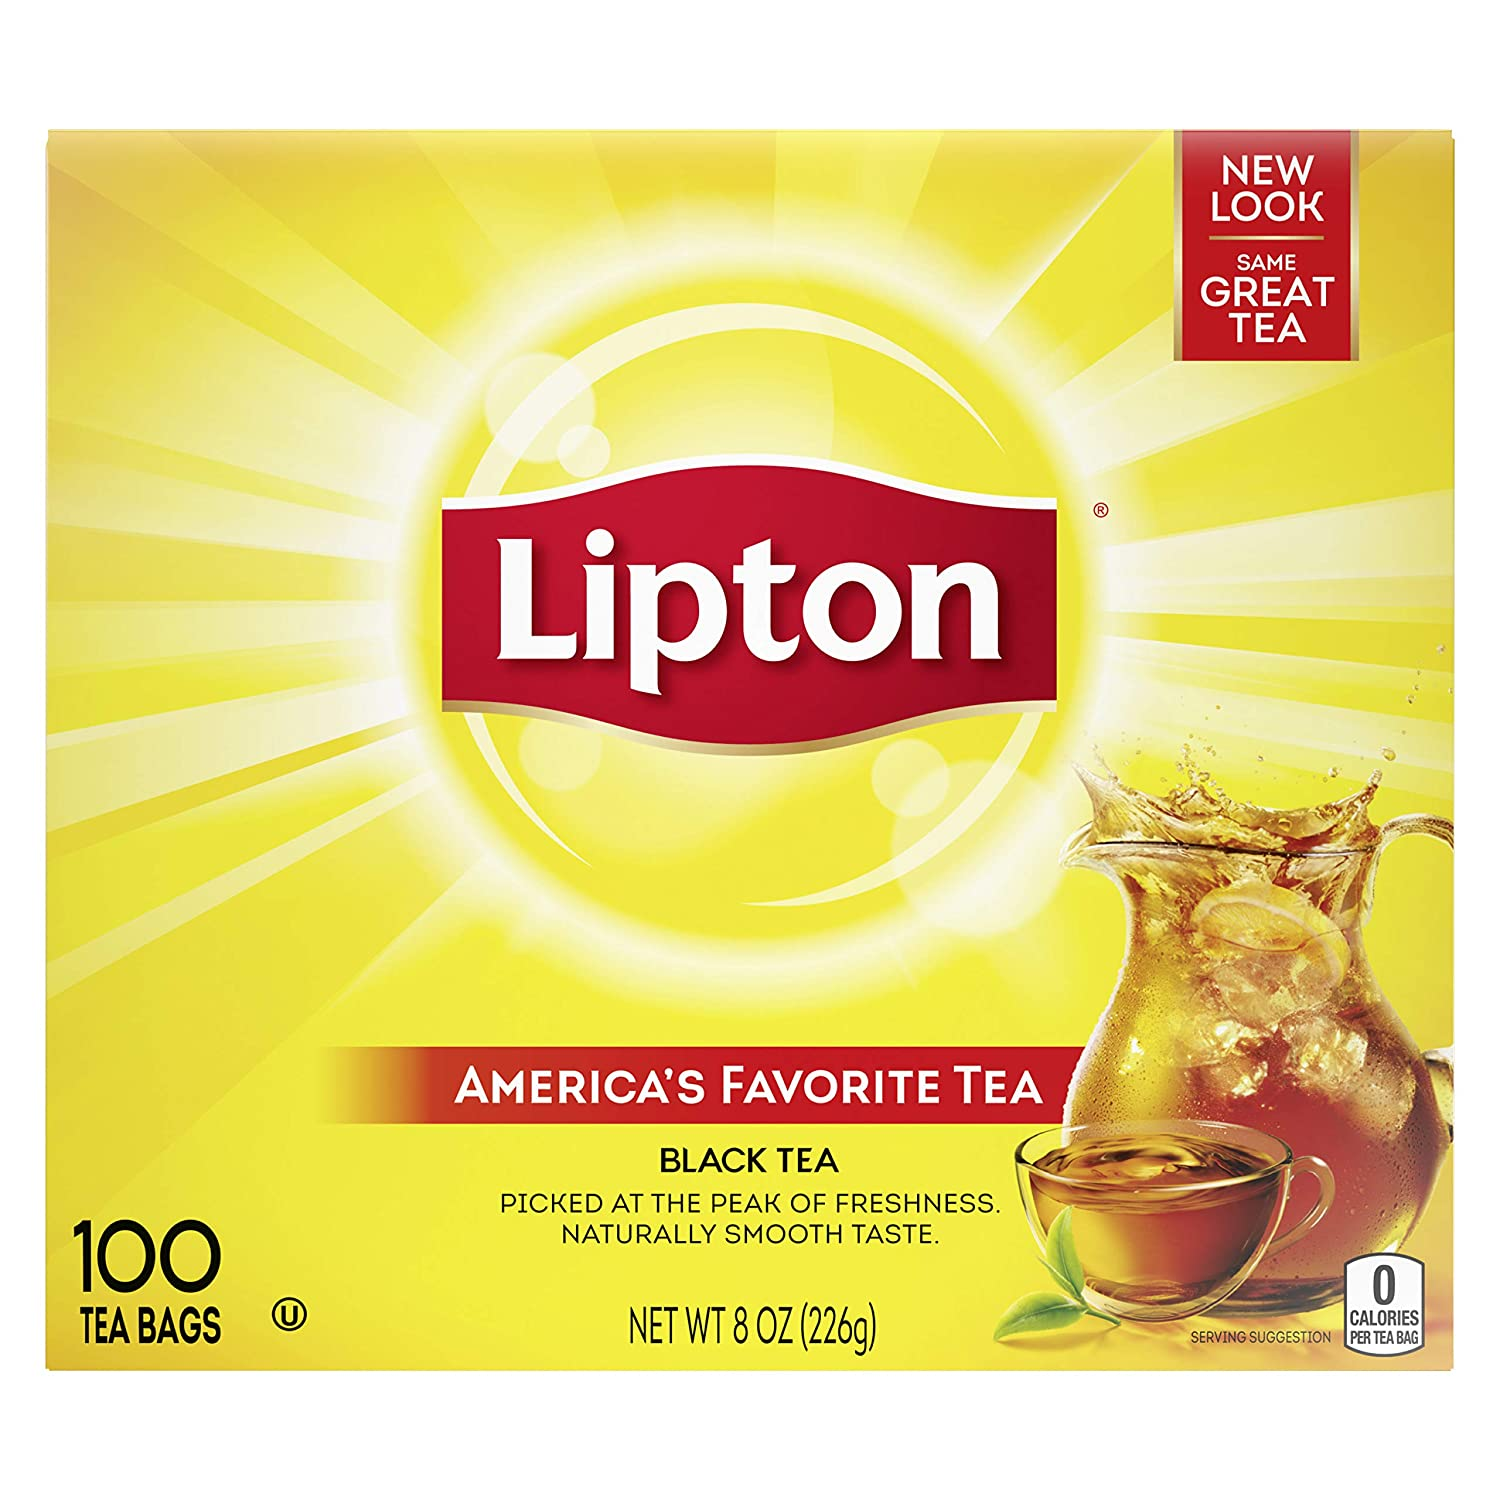 Lipton Tea Bags For A Naturally Smooth Taste Black Tea Can Help Support a Healthy Heart 8 oz 100 Count